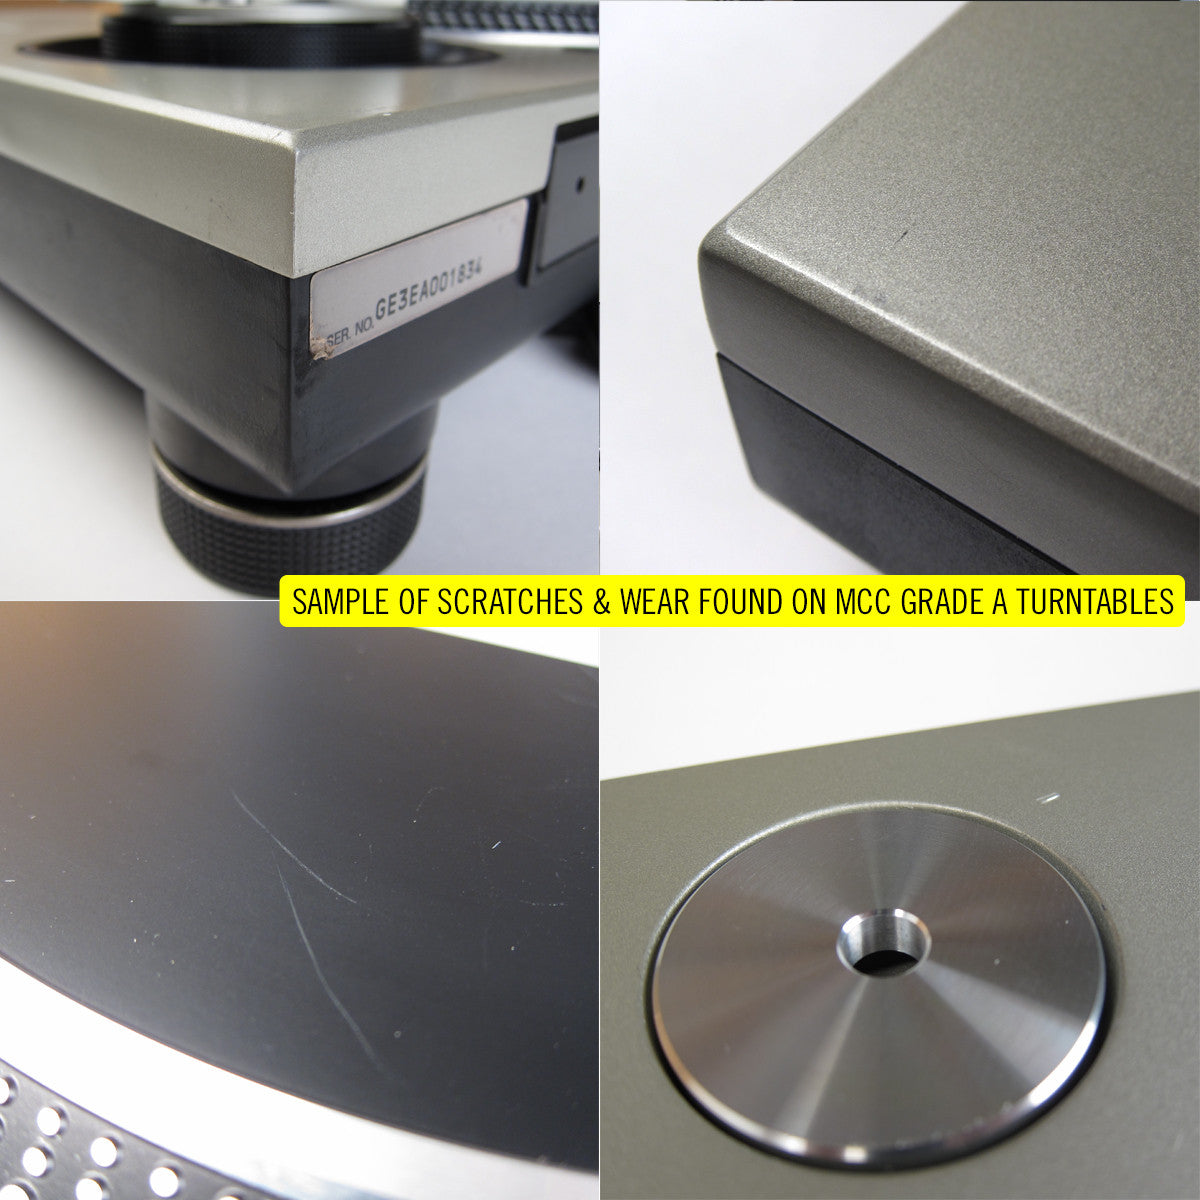 Technics: SL-1200MK5 Turntable - Stokyo MCC Refurbished